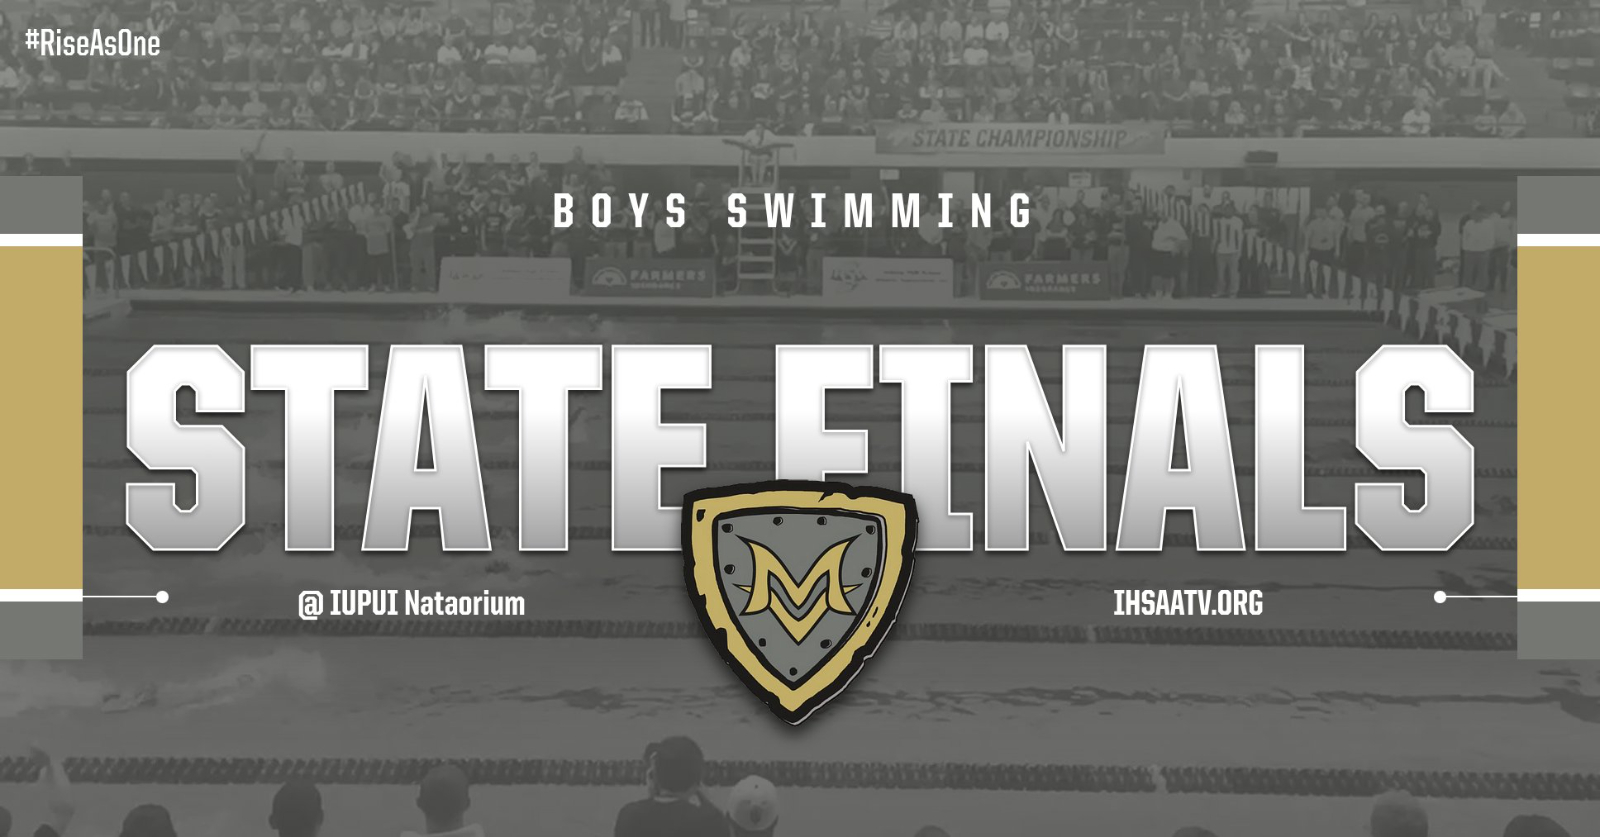 Boys Swimming State Finals Information